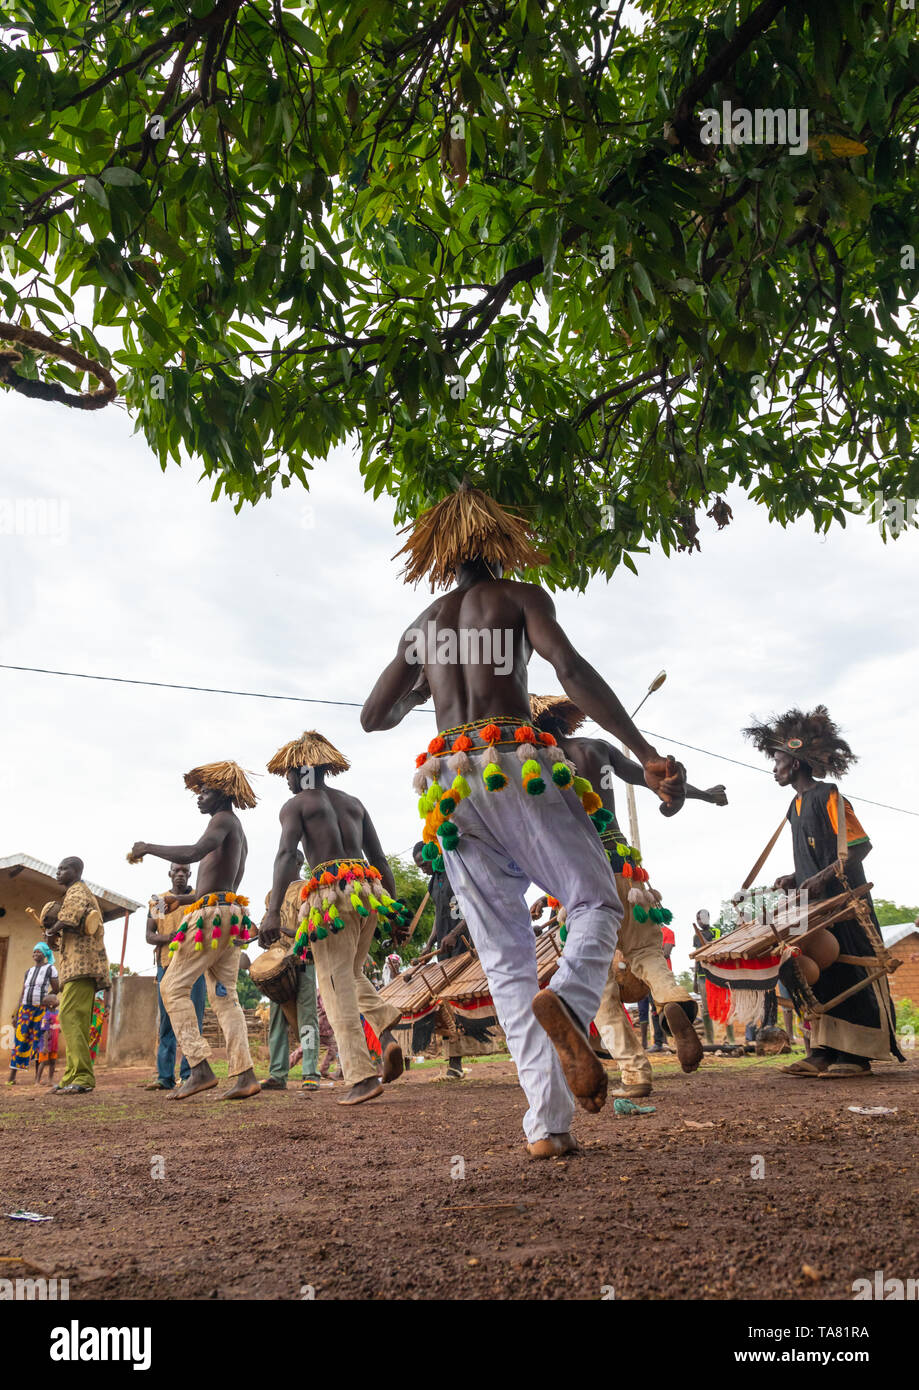 Senufo shirtless man dancing the Ngoro during a ceremony, Savanes district, Ndara, Ivory Coast Stock Photo